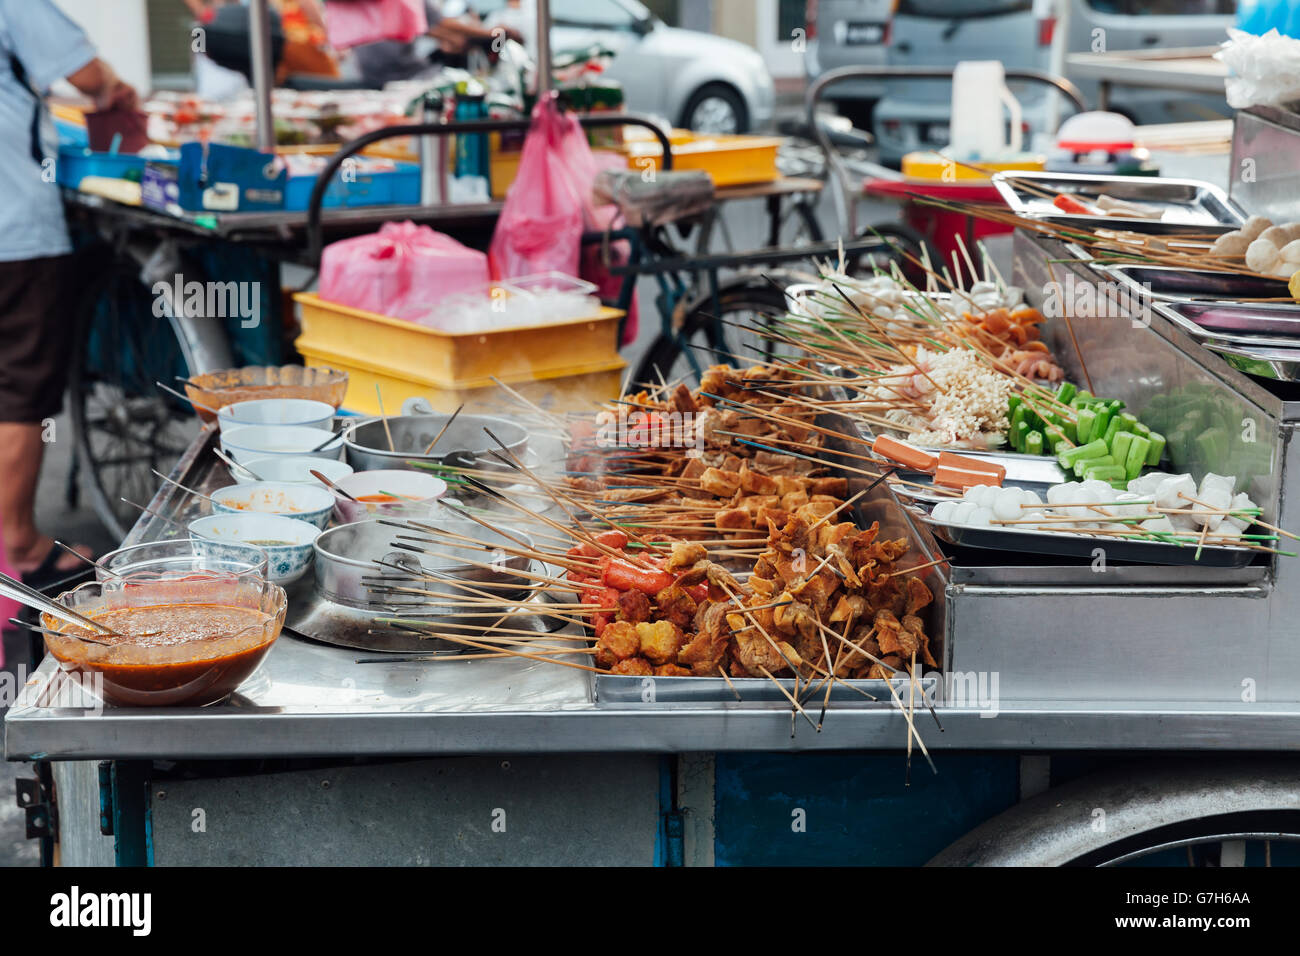 Steamboat Lok-Lok stand au marché alimentaire Rue Kimberly, George Town, Penang, Malaisie. Photo Stock